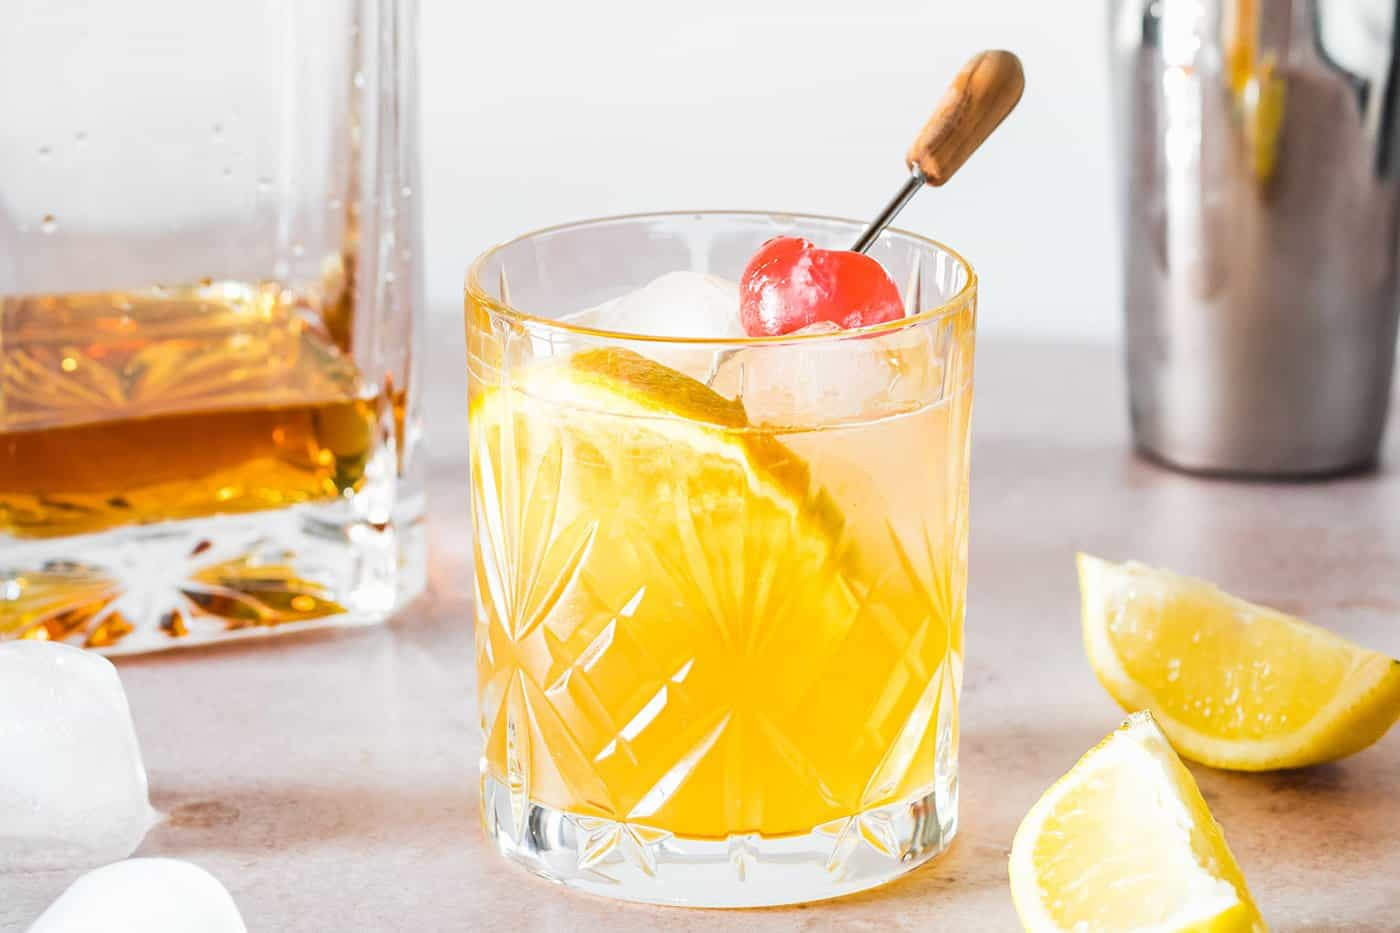 a classic whiskey sour made without egg white, garnished with an orange slice and cherry